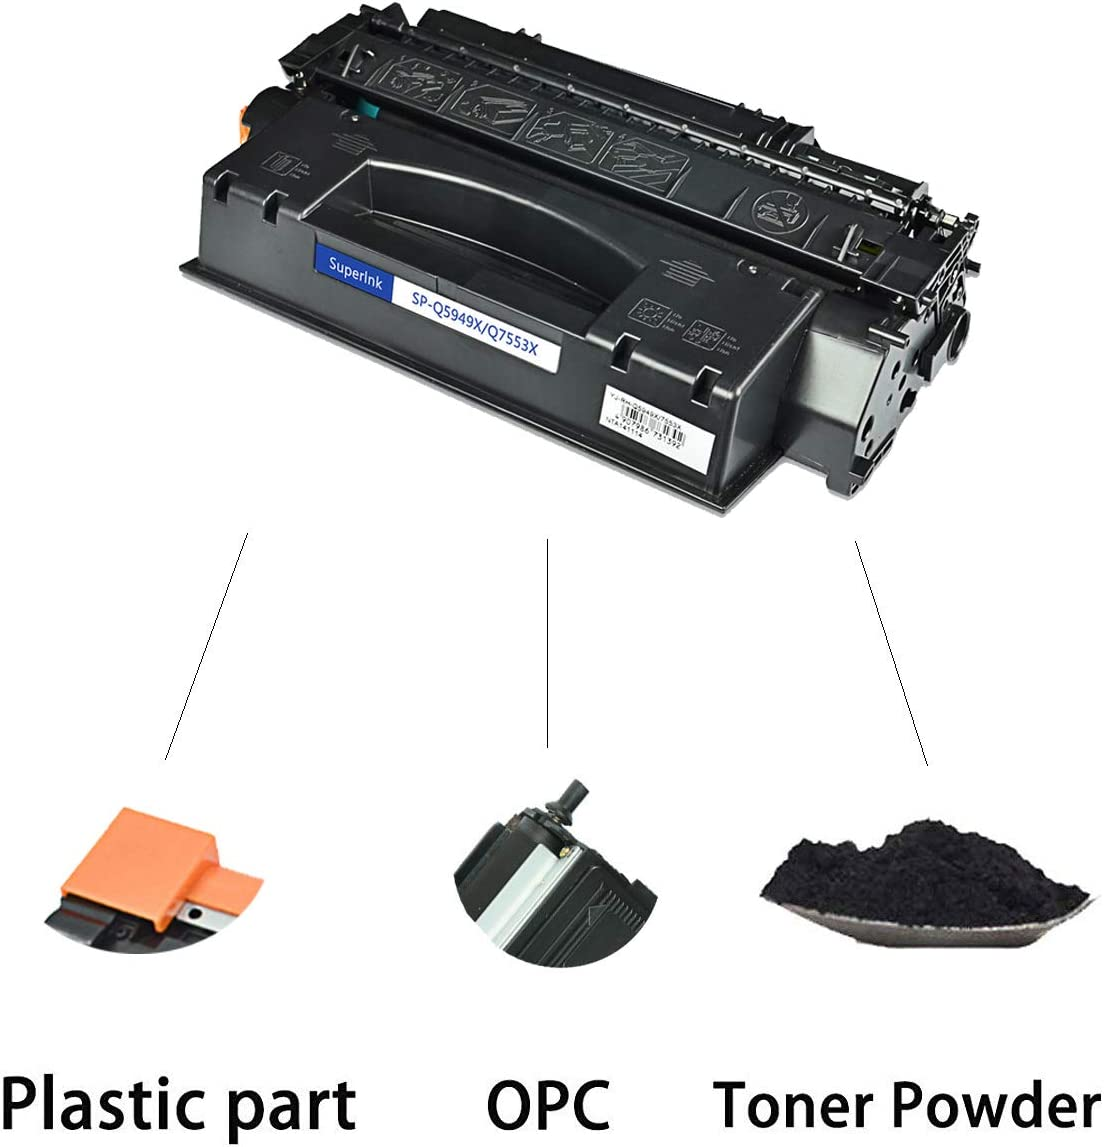 SuperInk High Yield Compatible Toner Cartridge Replacement for HP 53X Q7553X to use with Laserjet P2015 P2015d P2015dn P2015x M2727 M2727nf M2727nfs MFP Black, 2-Pack